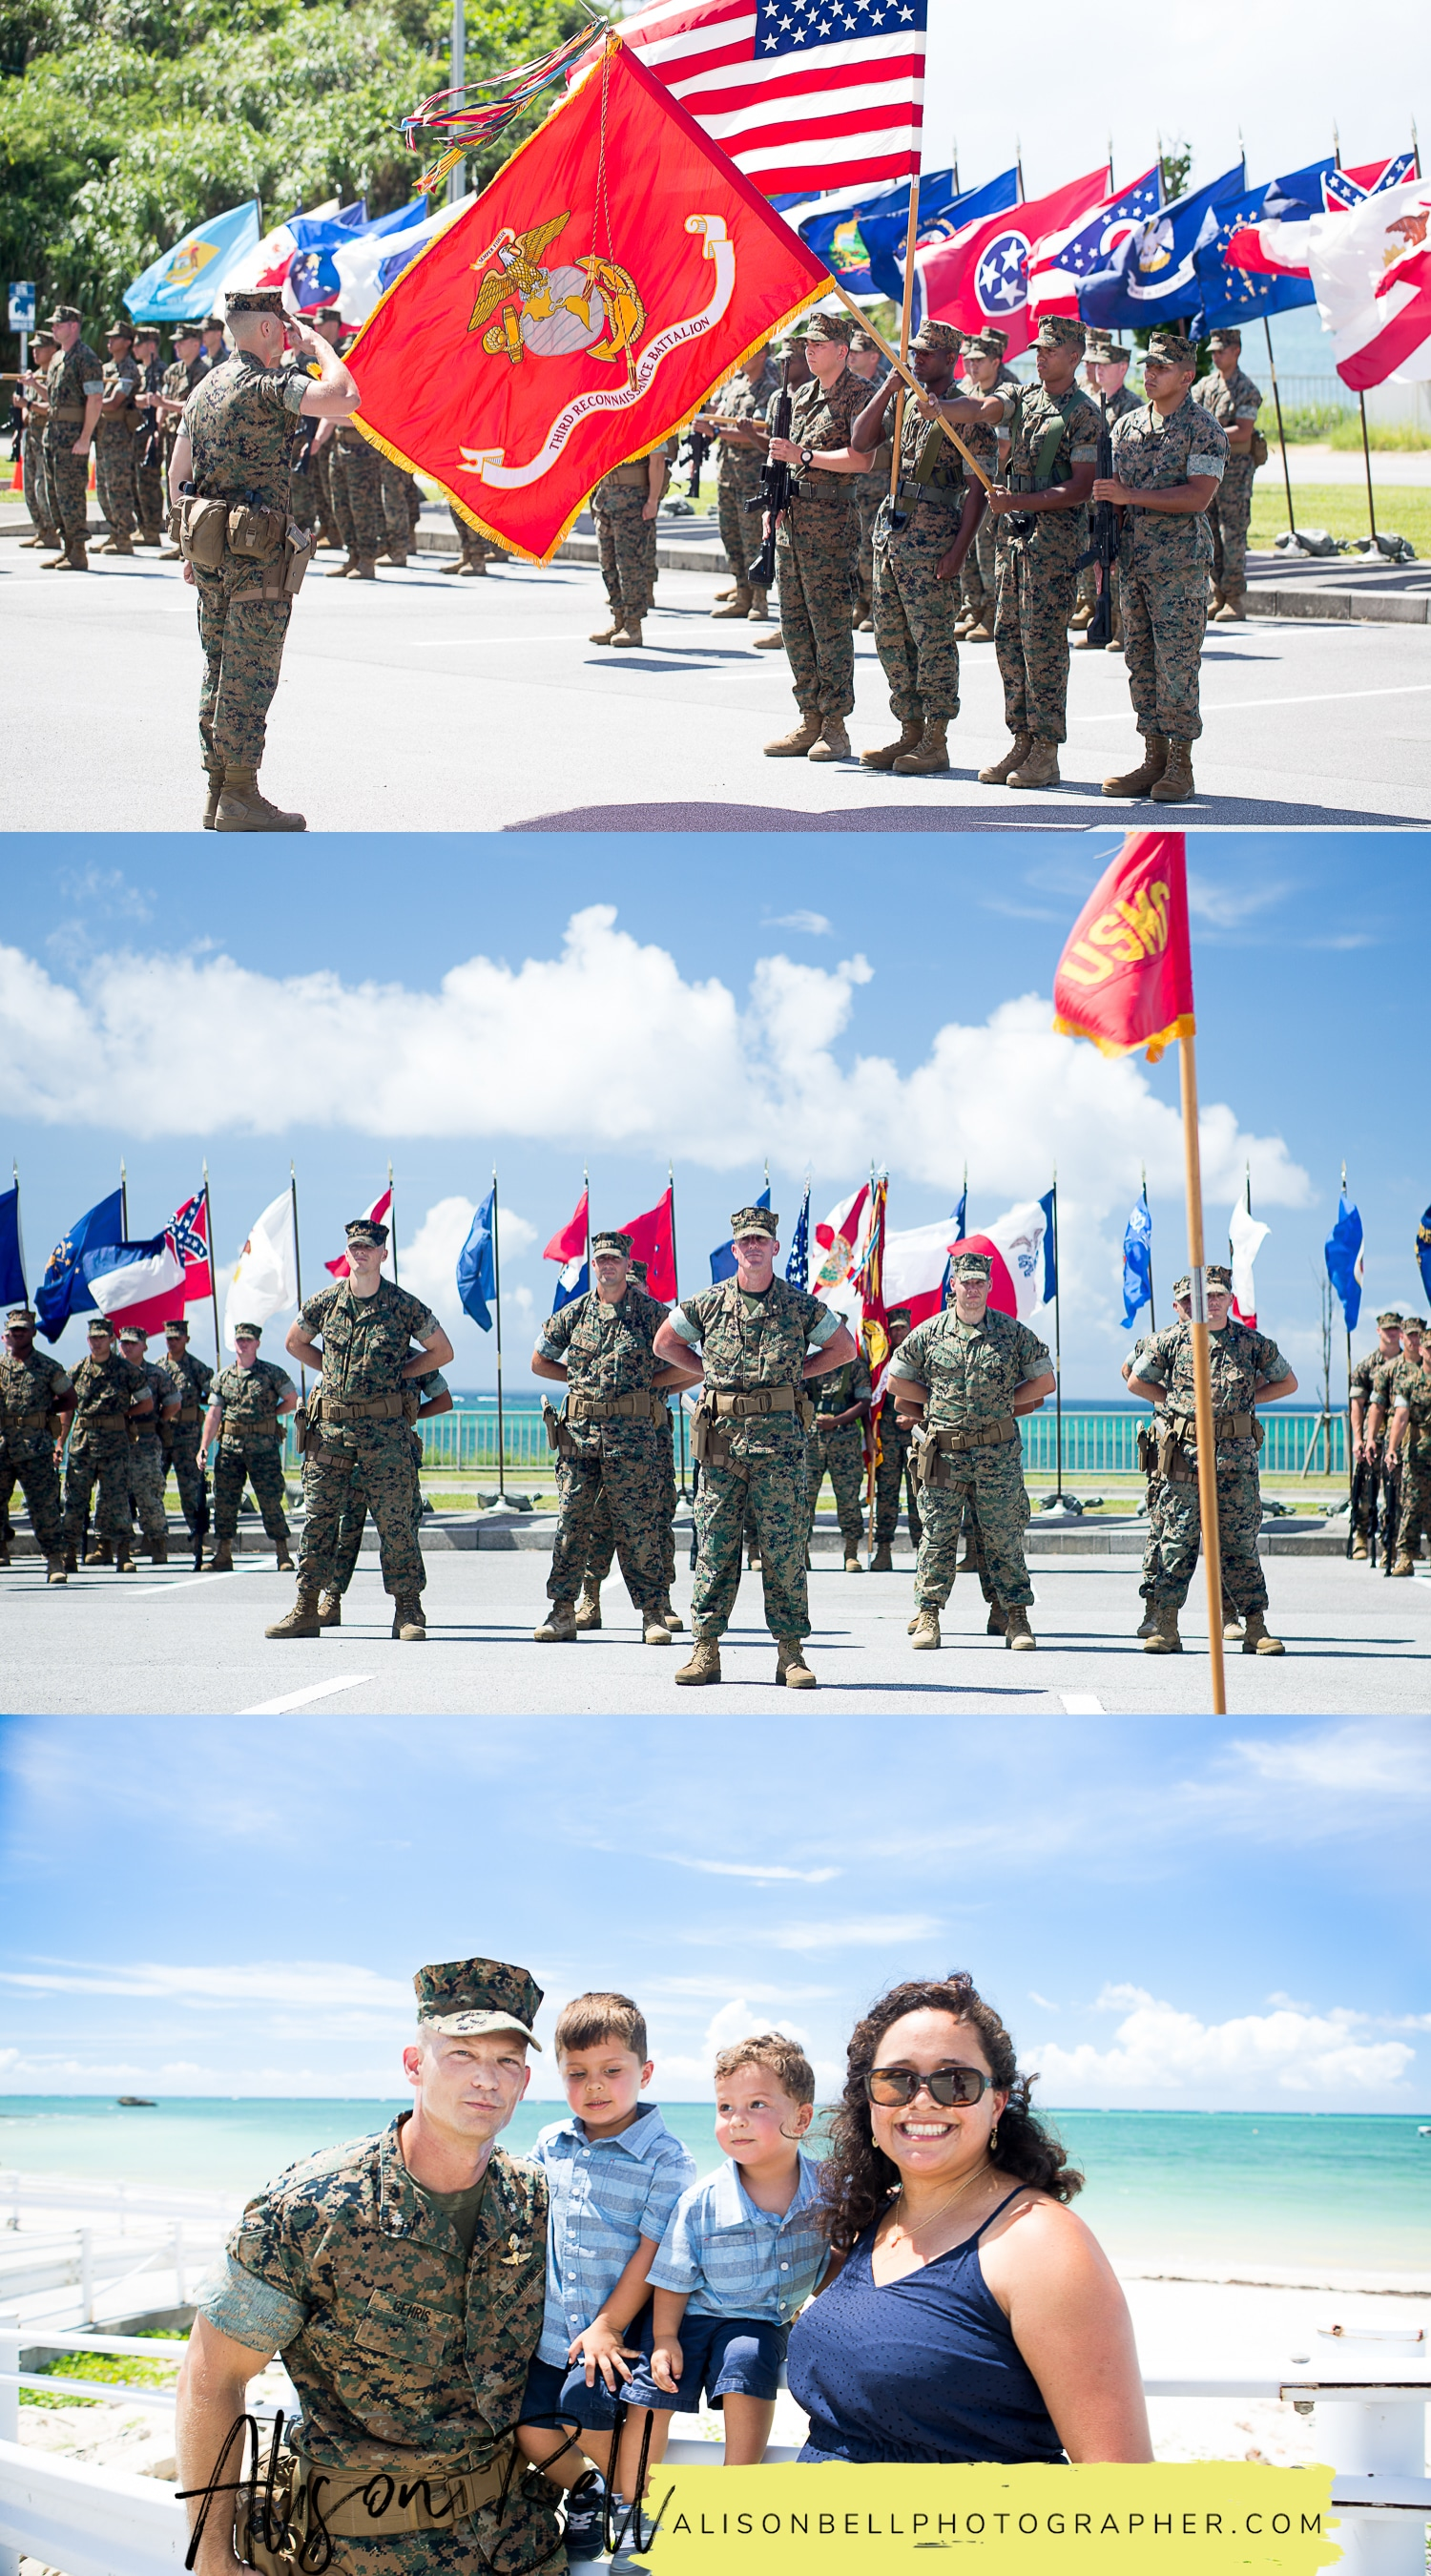 United States Marine Corps Change of Command Ceremony, 3rd Recond Battalion, Camp Schwab, Okinawa Japan by Alison Bell, Photographer. #alisonbellphotog alisonbellphotographer.com